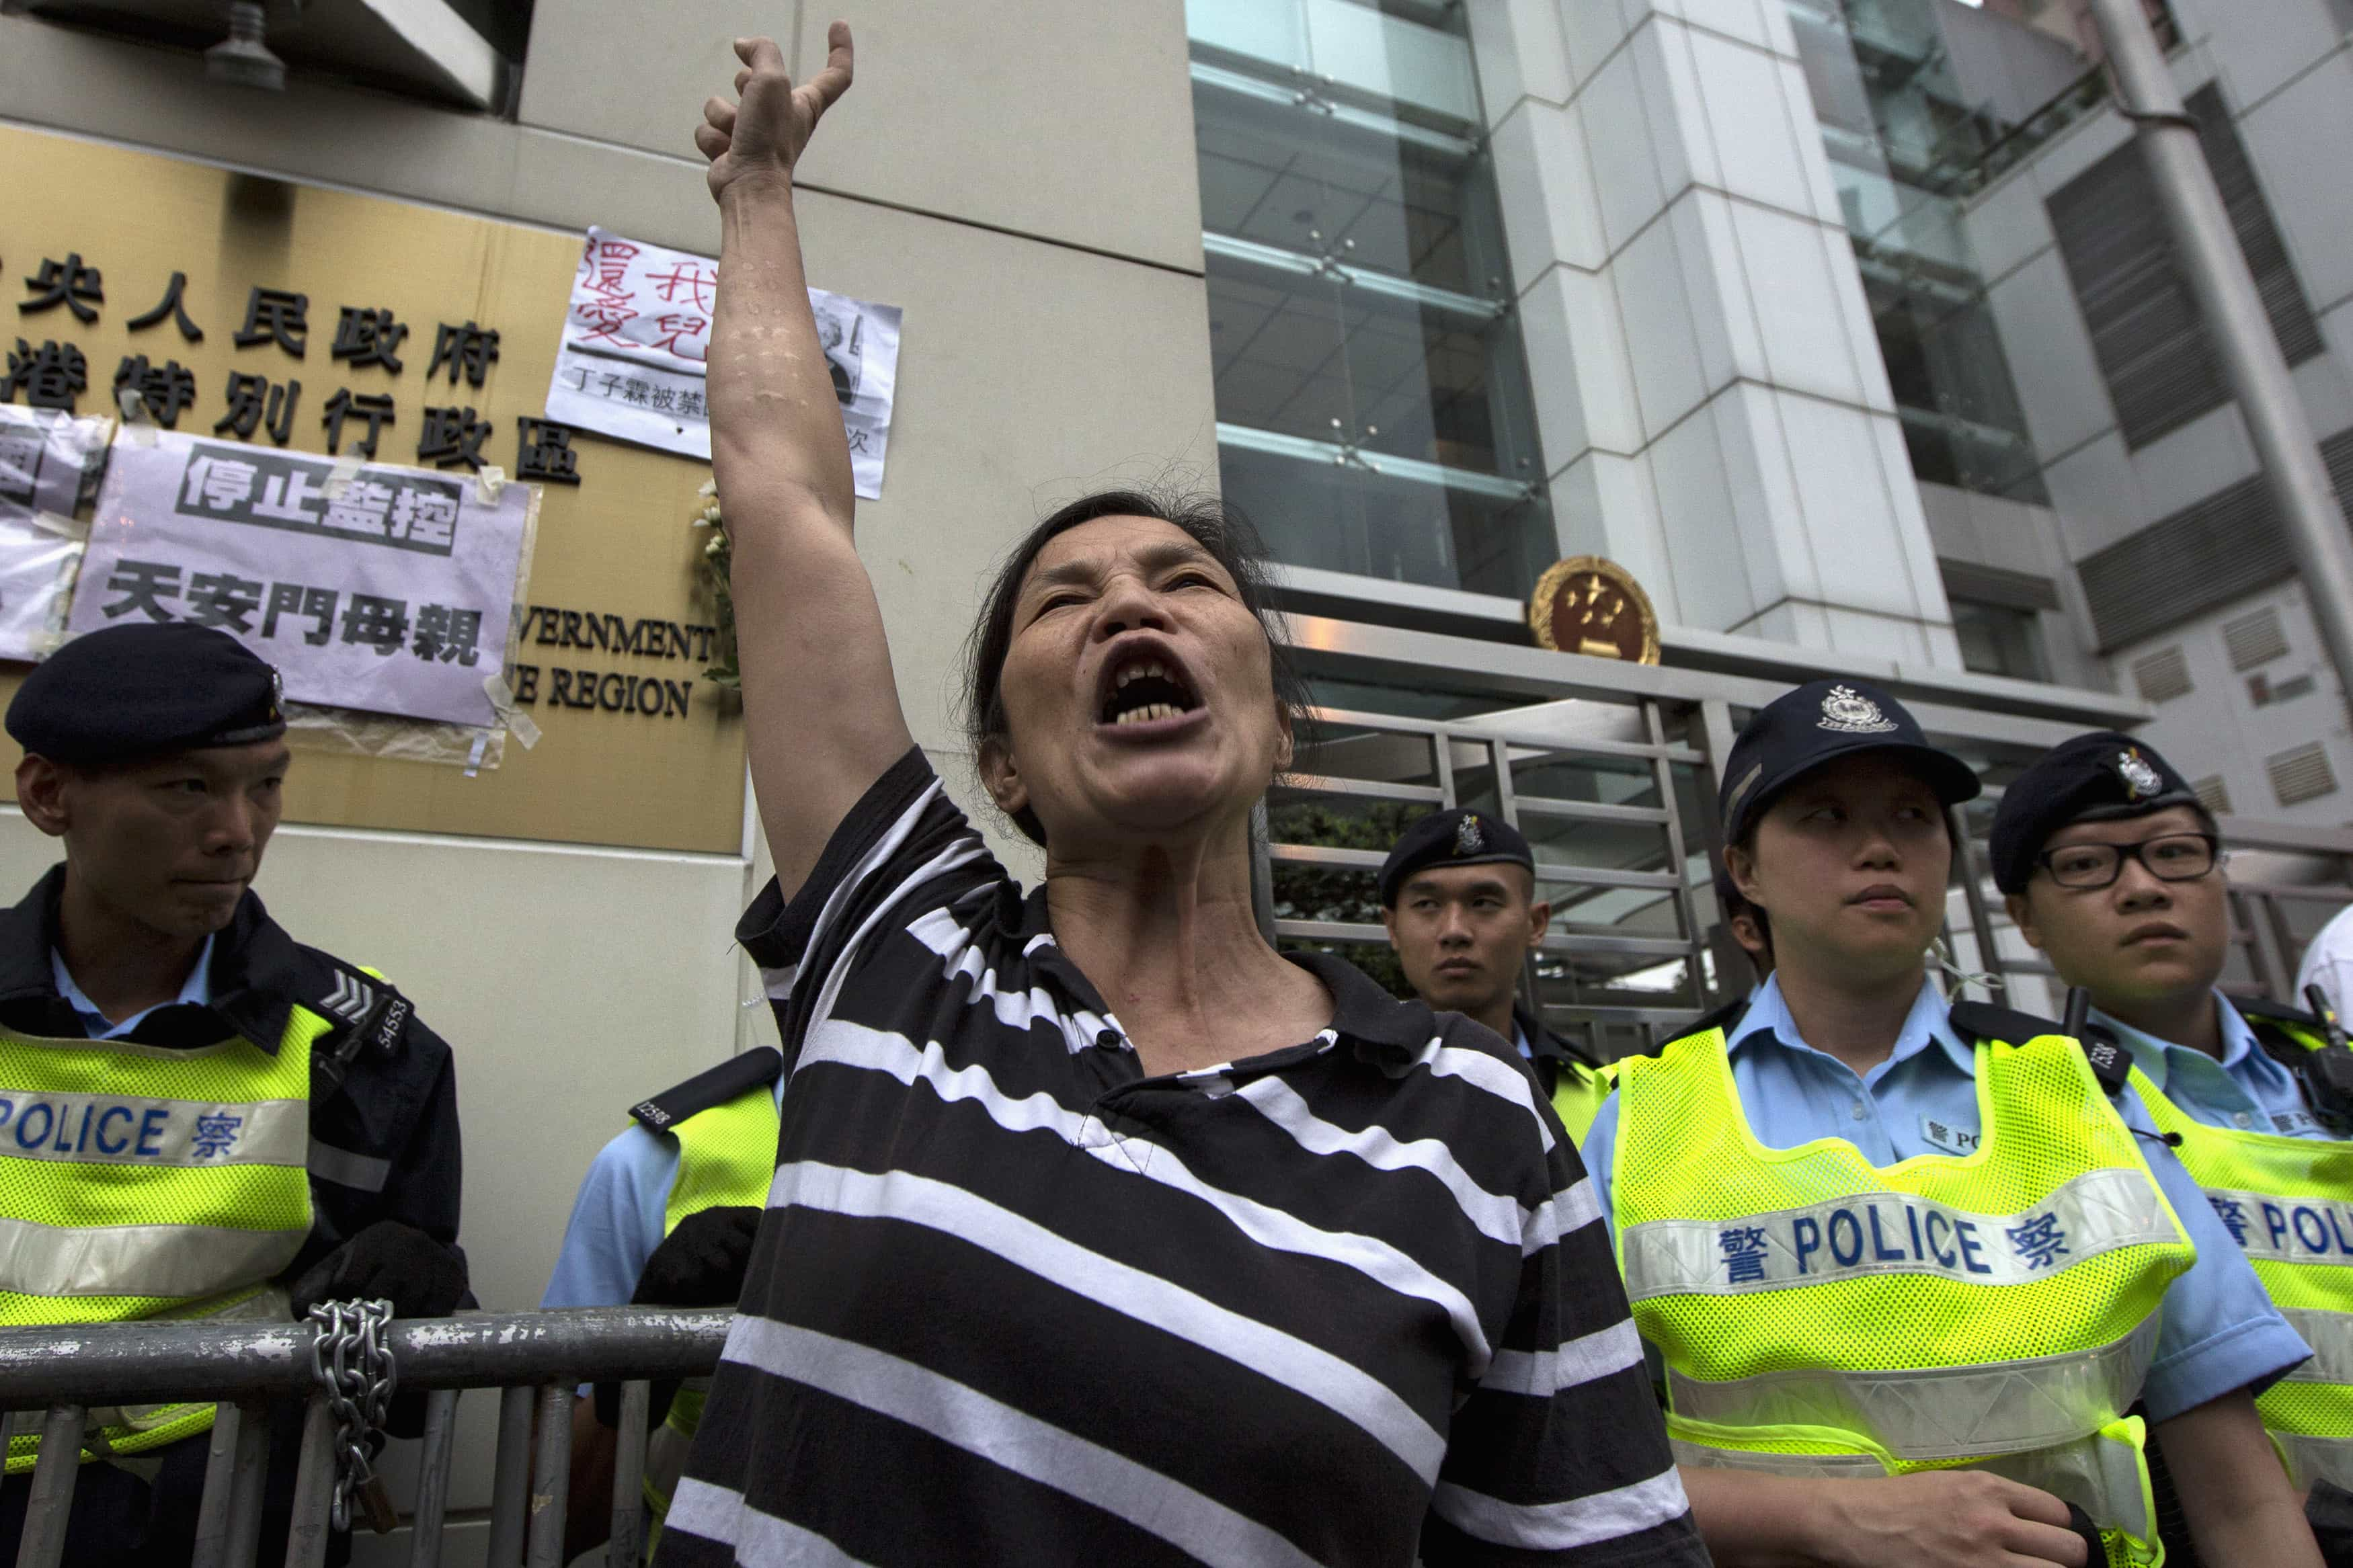 Pro-democracy activist Lui Yuk-lin shouts during a protest calling for the release of Chinese journalist Gao Yu, Hong Kong publisher Yao Wentian and Chinese lawyer Pu Zhiqiang, outside the Chinese liaison office in Hong Kong on 11 May 2014, REUTERS/Tyrone Siu